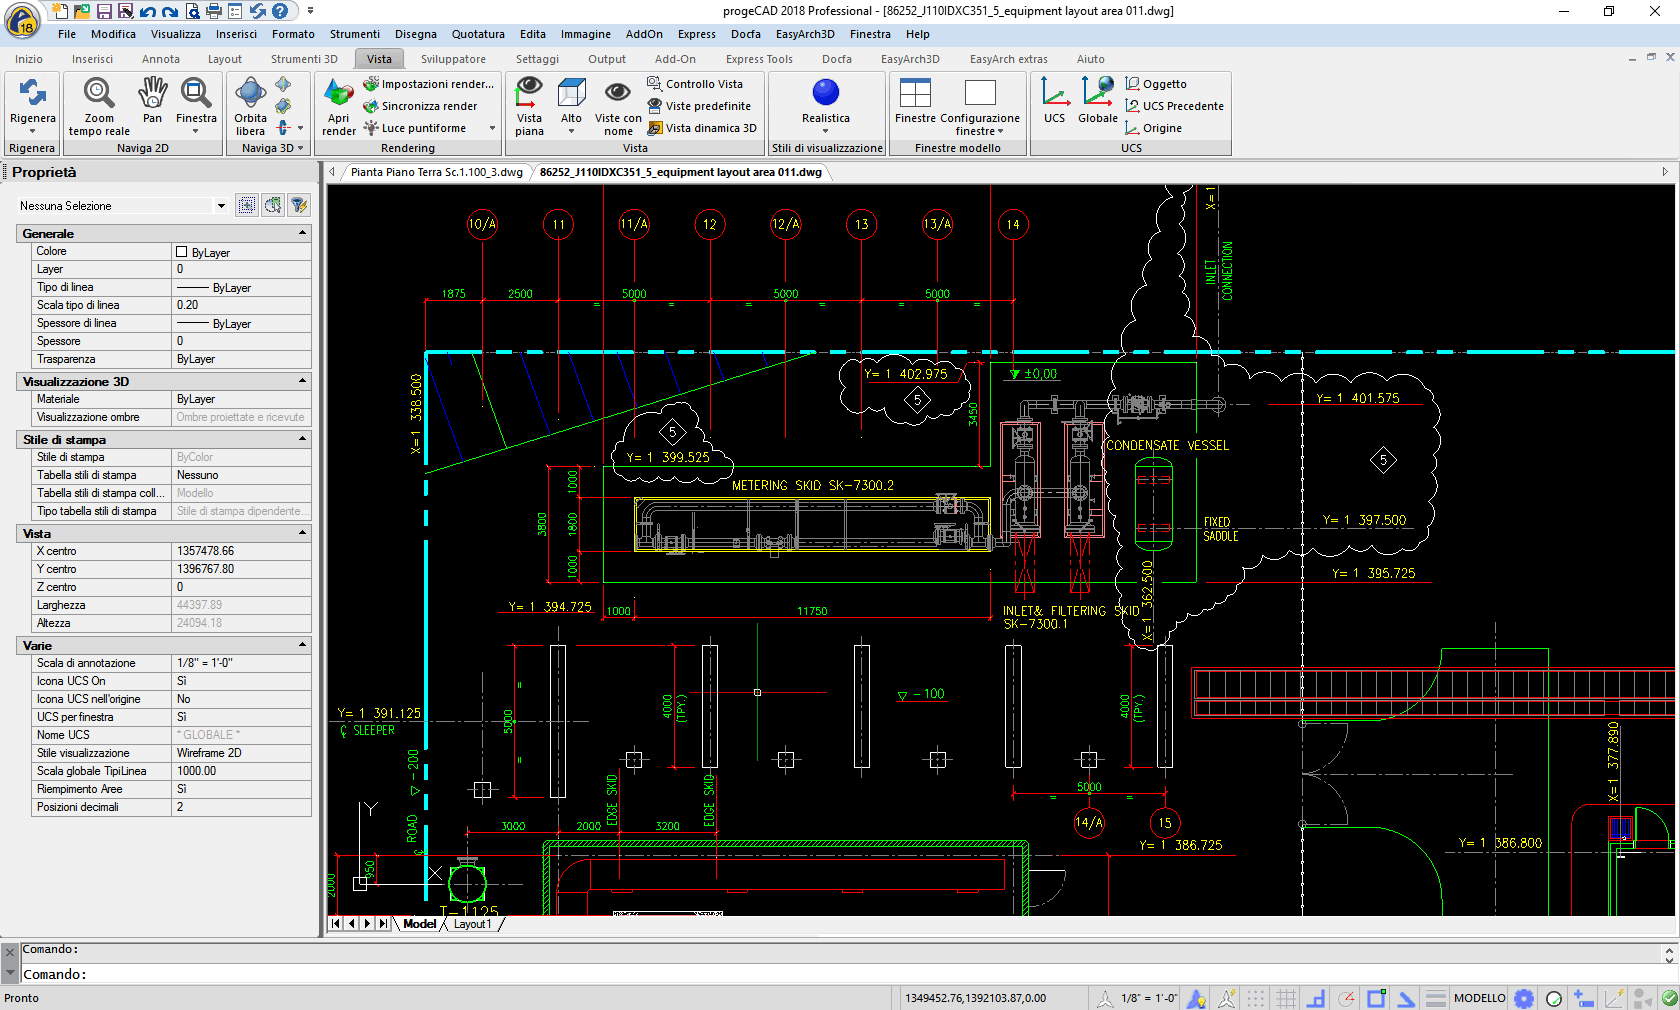 progeCAD 2019 Professional Latest Version Download